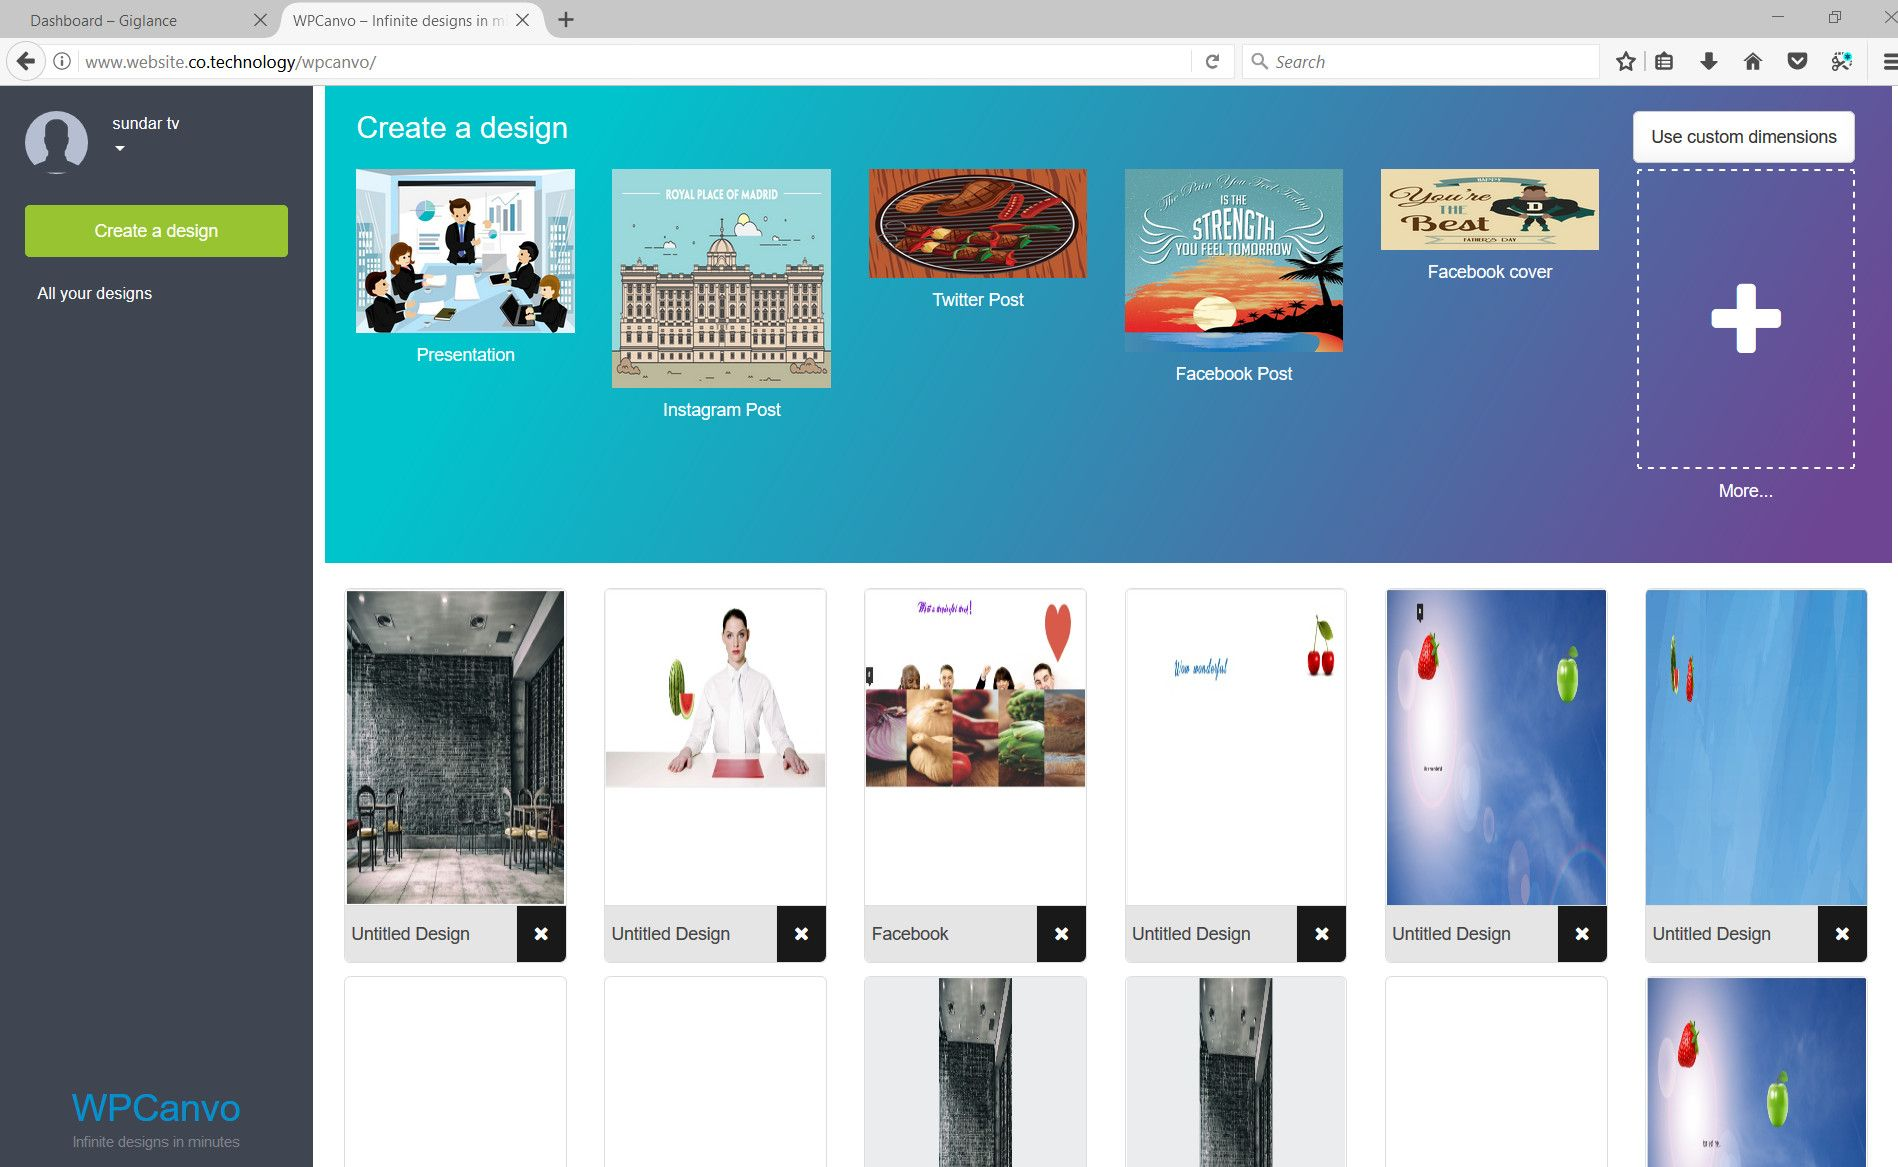 WPCanvo - DIY Graphic Designer WordPress Theme Screenshot 3